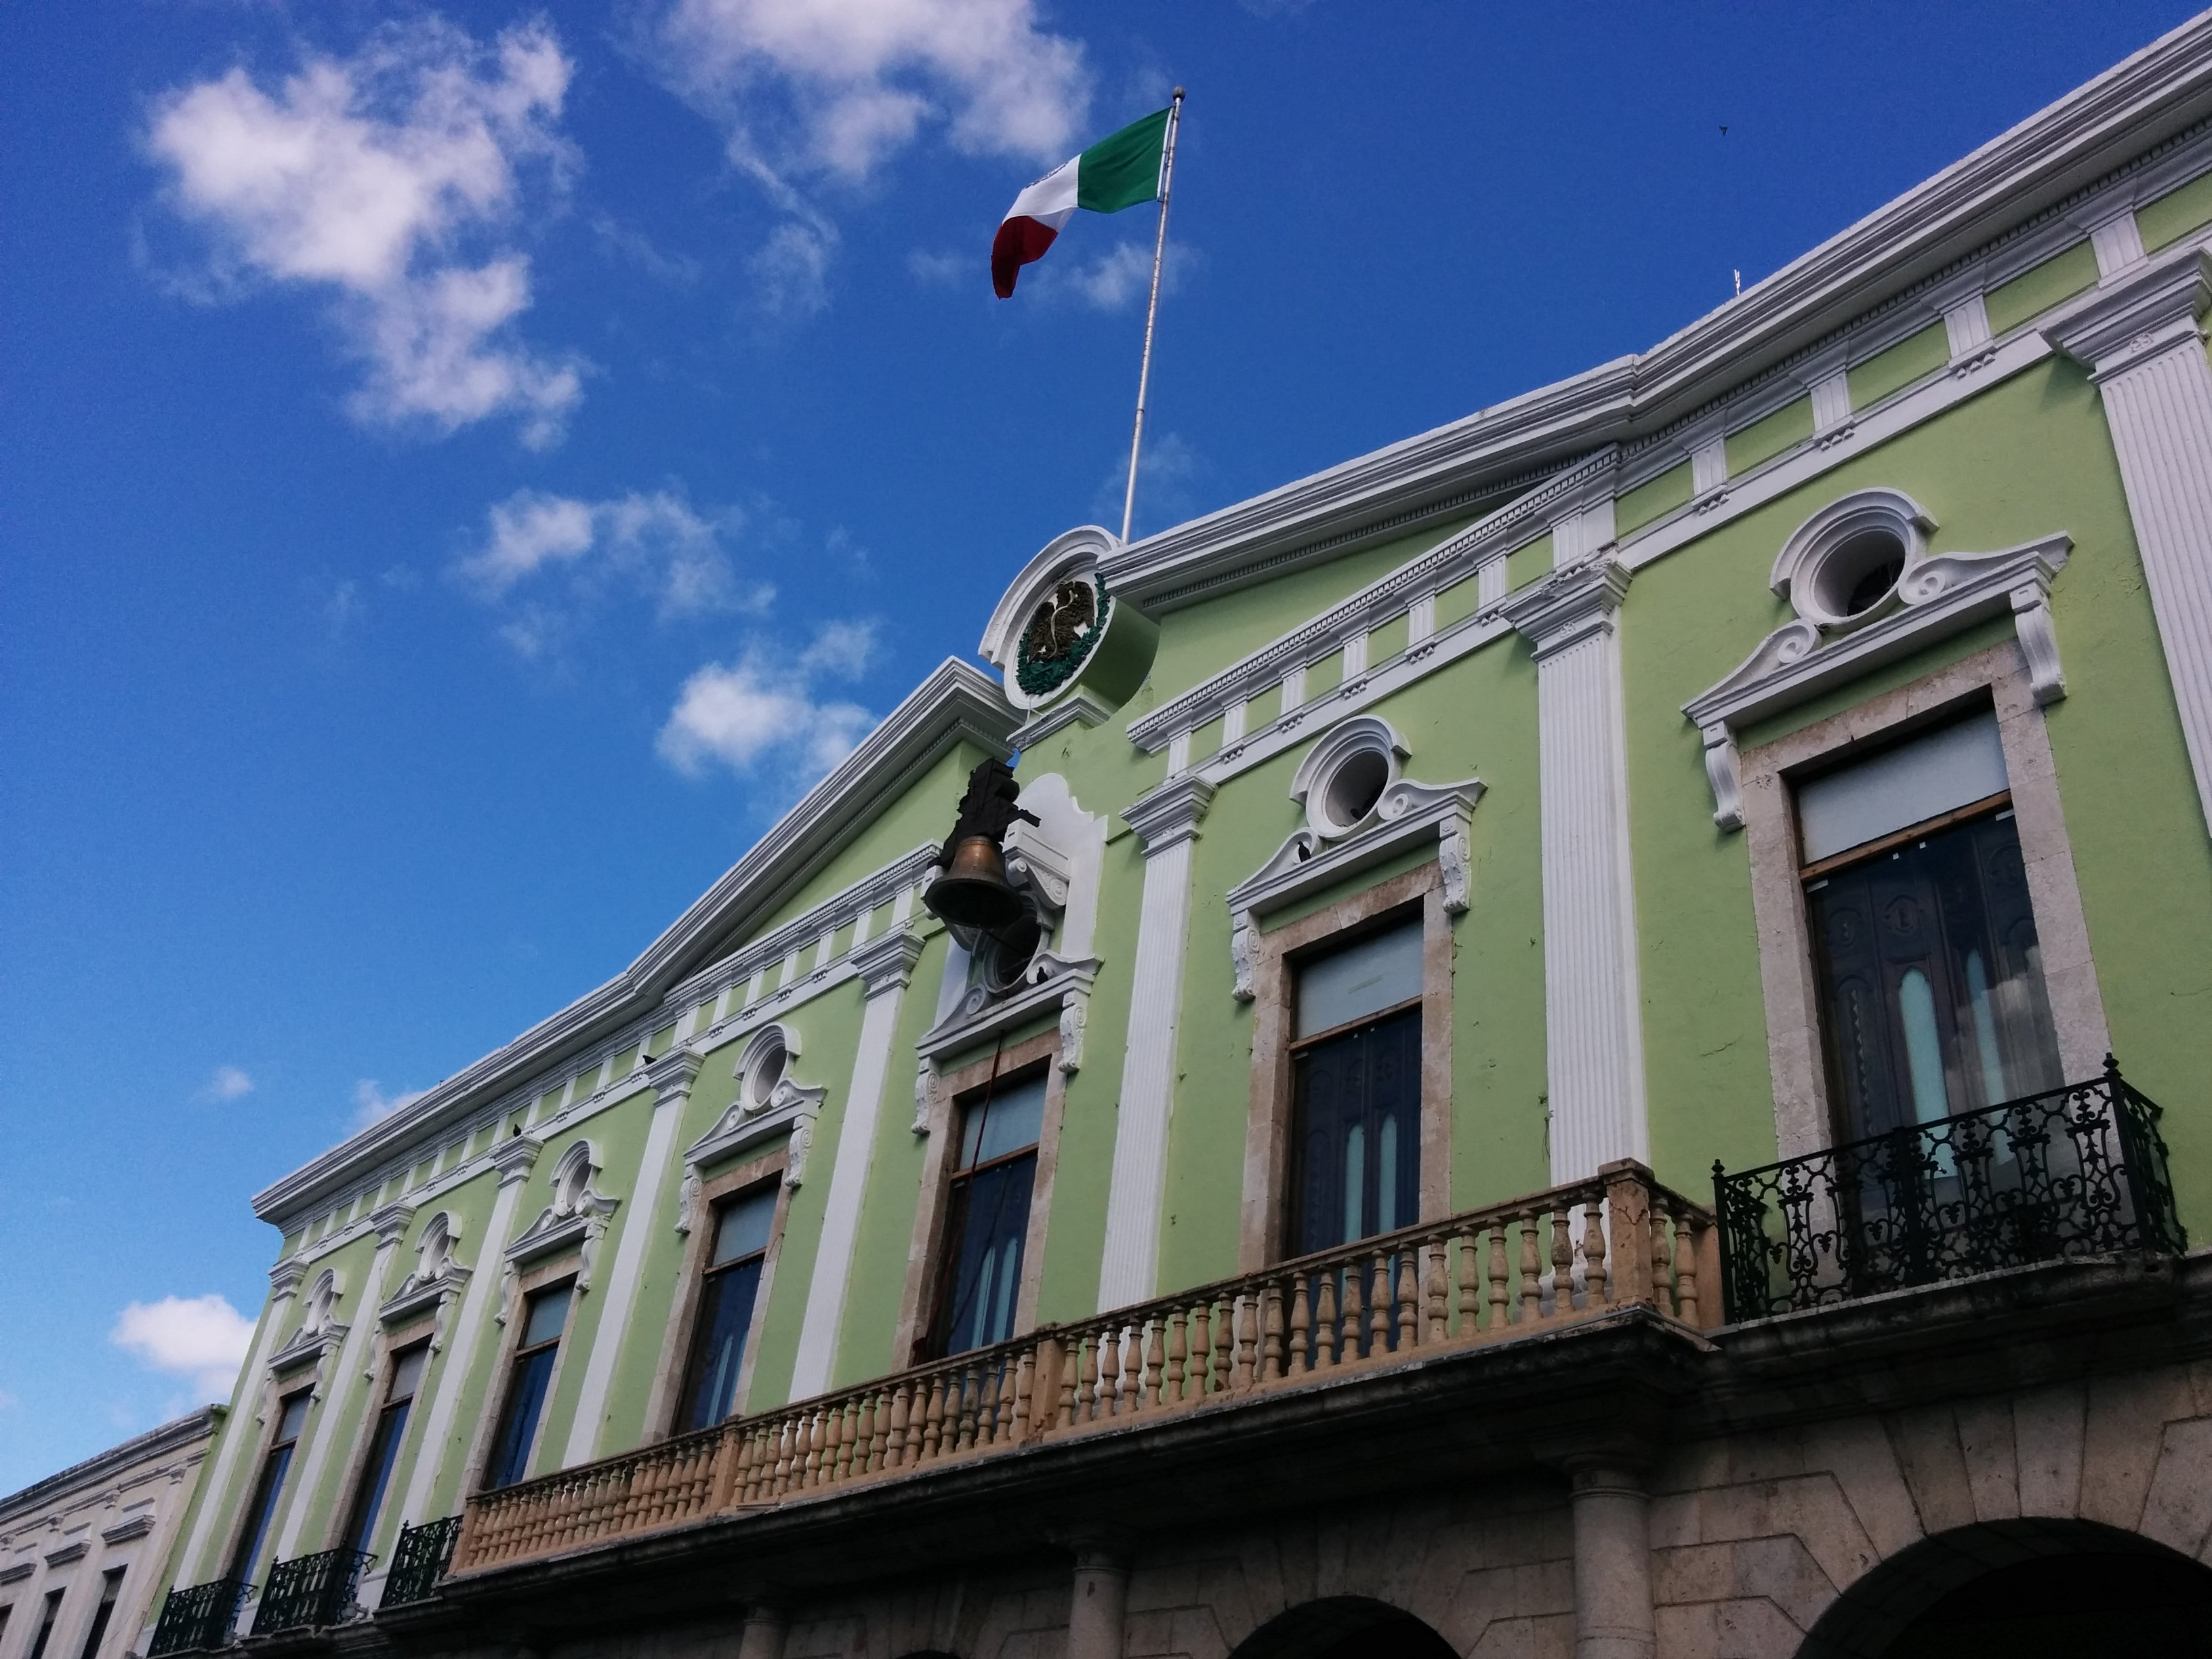 Palacio de Gobierno - The Palace of the government - A complete guide to Merida, Mexico